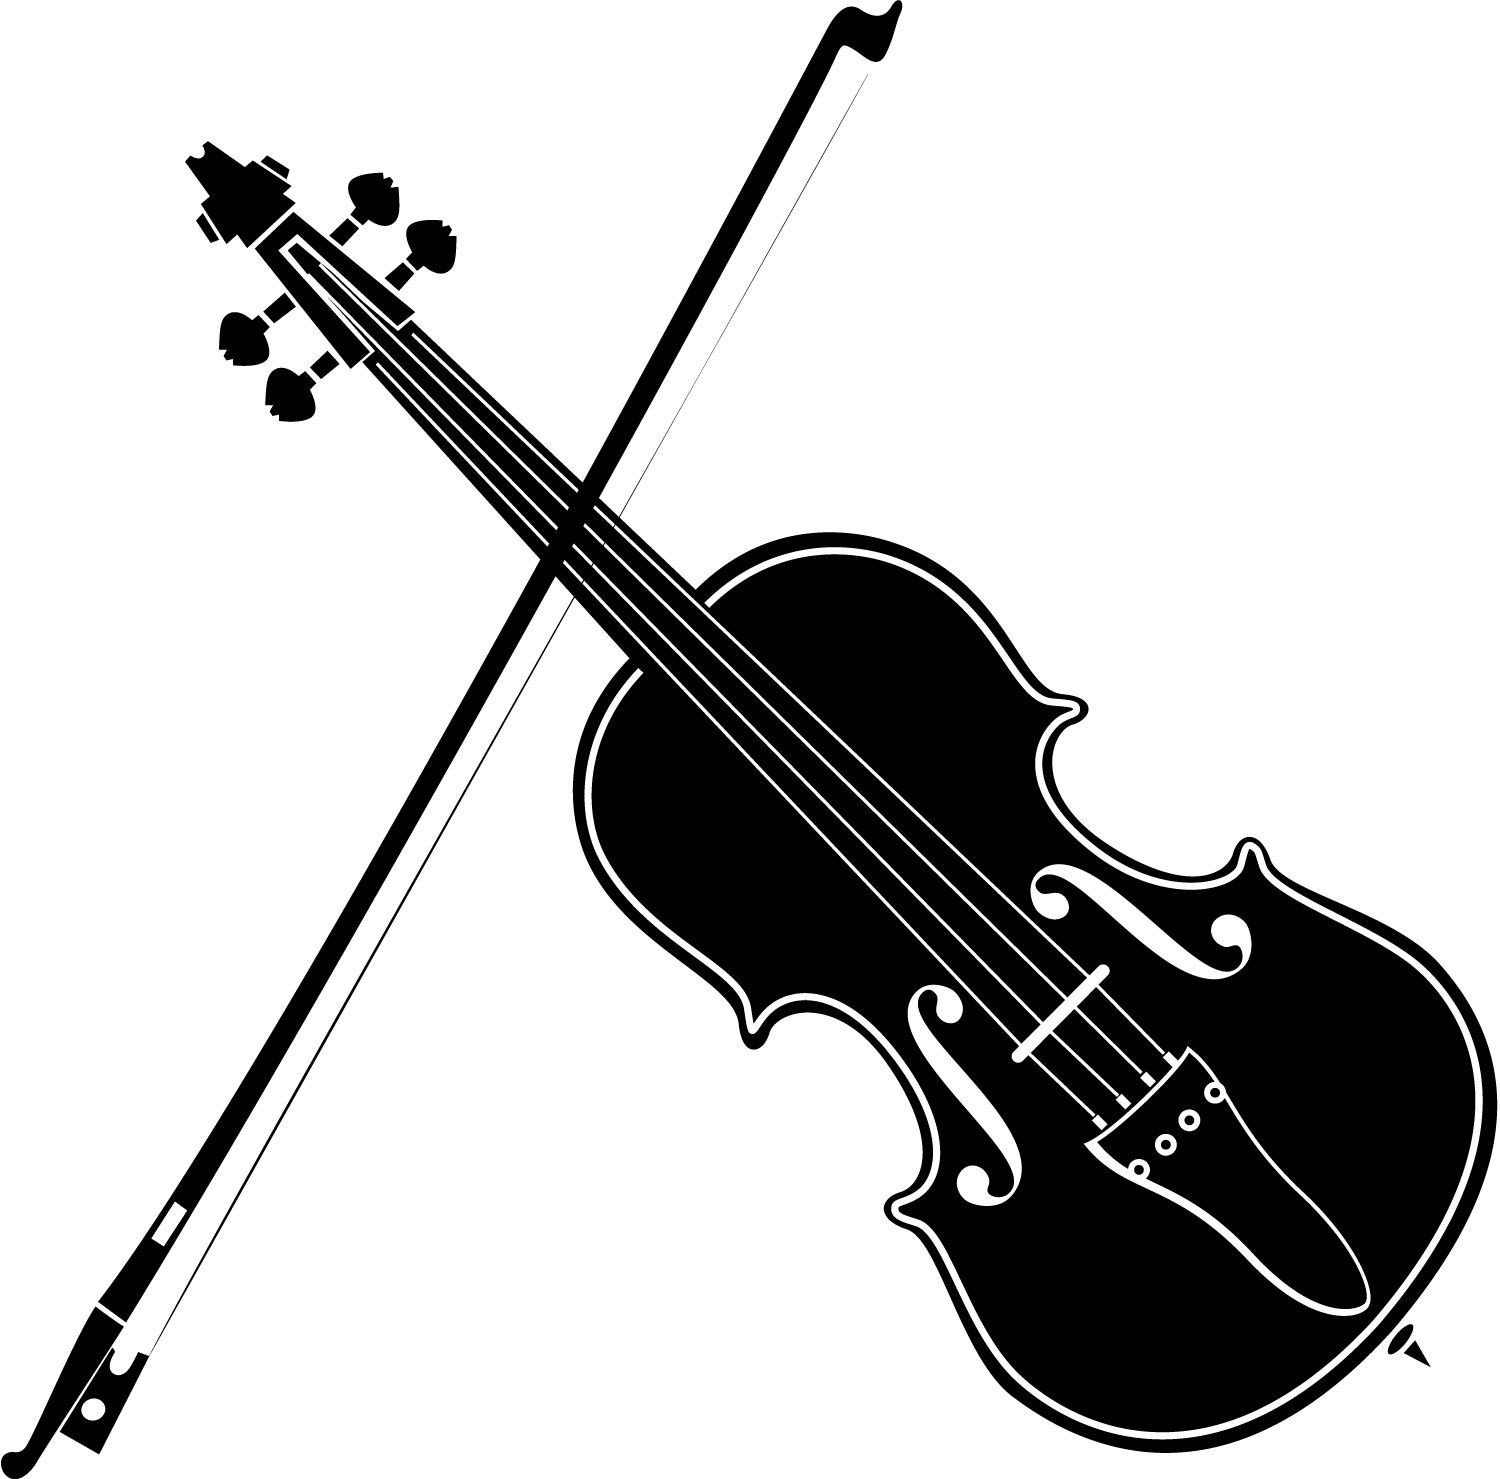 Violin clipart. Playing black and white svg